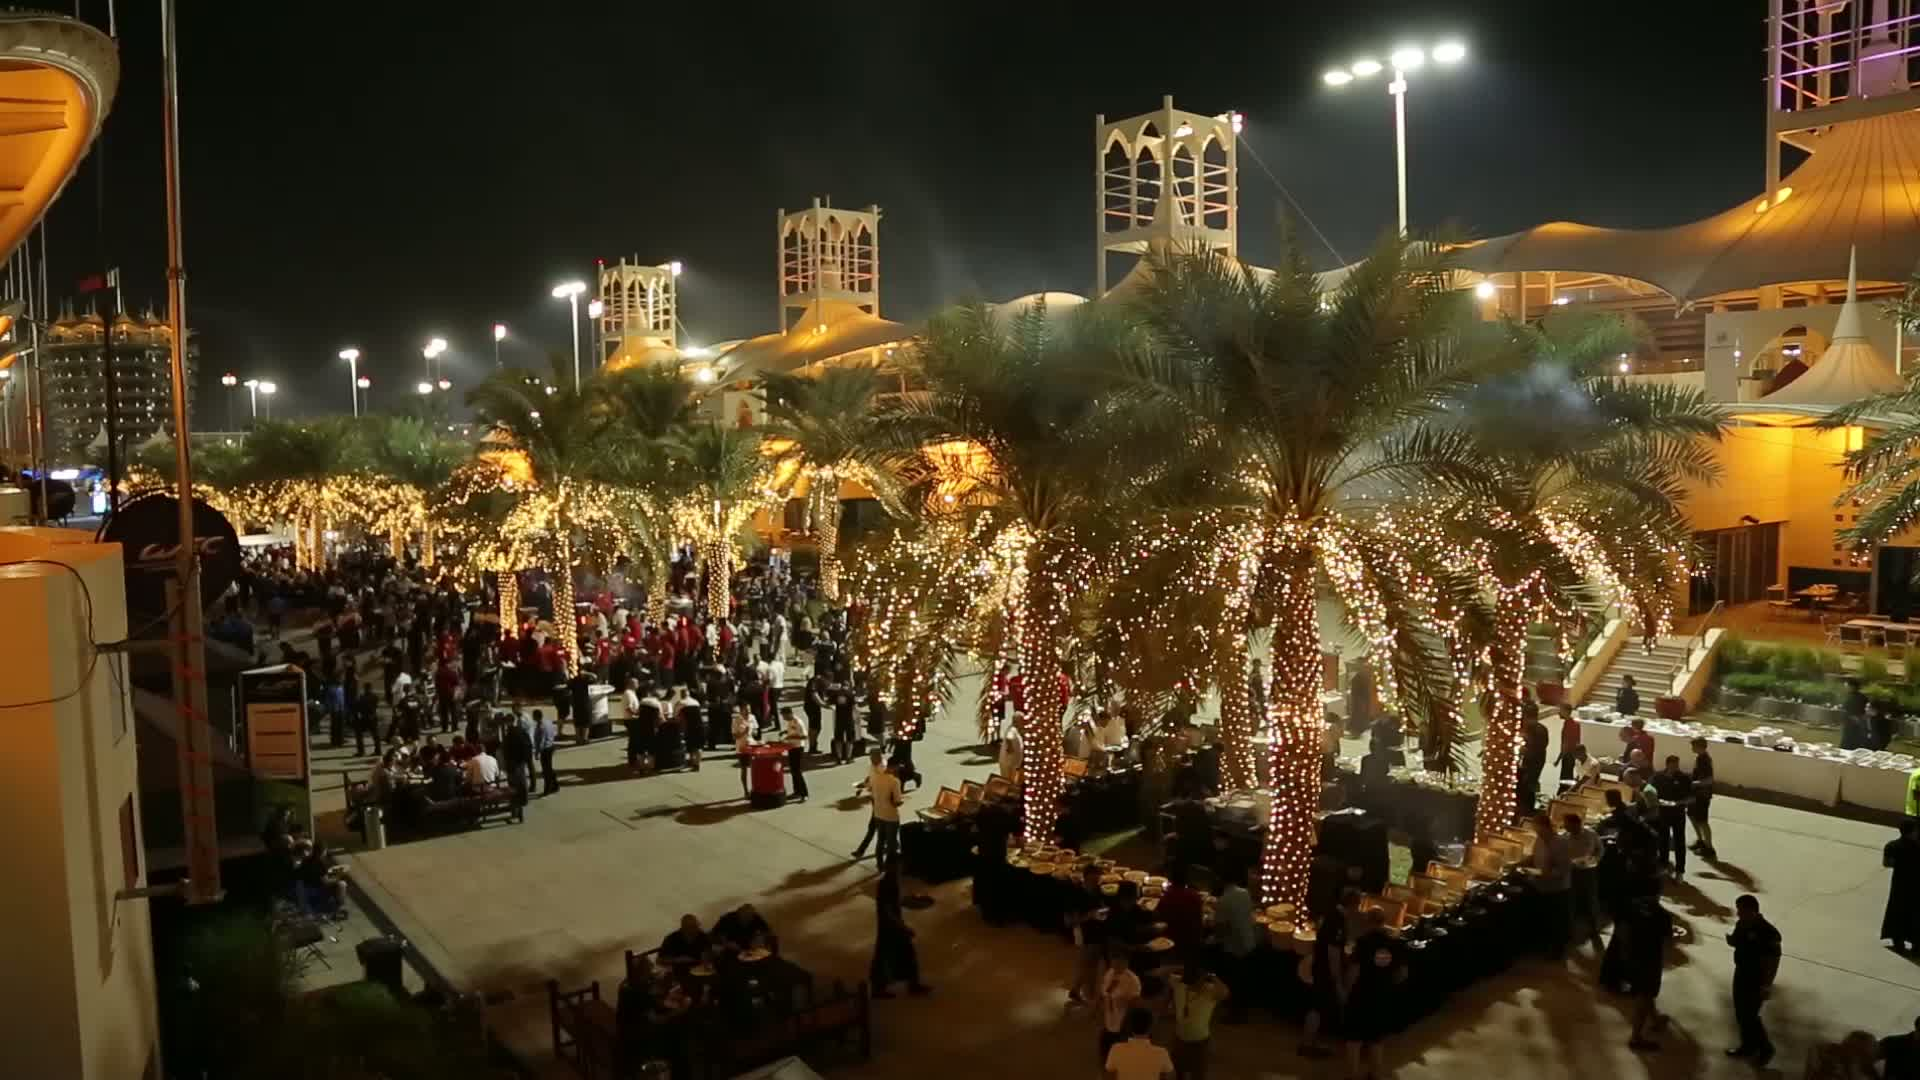 60 Seconds of Audi Sport 101/2015 - WEC Bahrain, Paddock Dinner